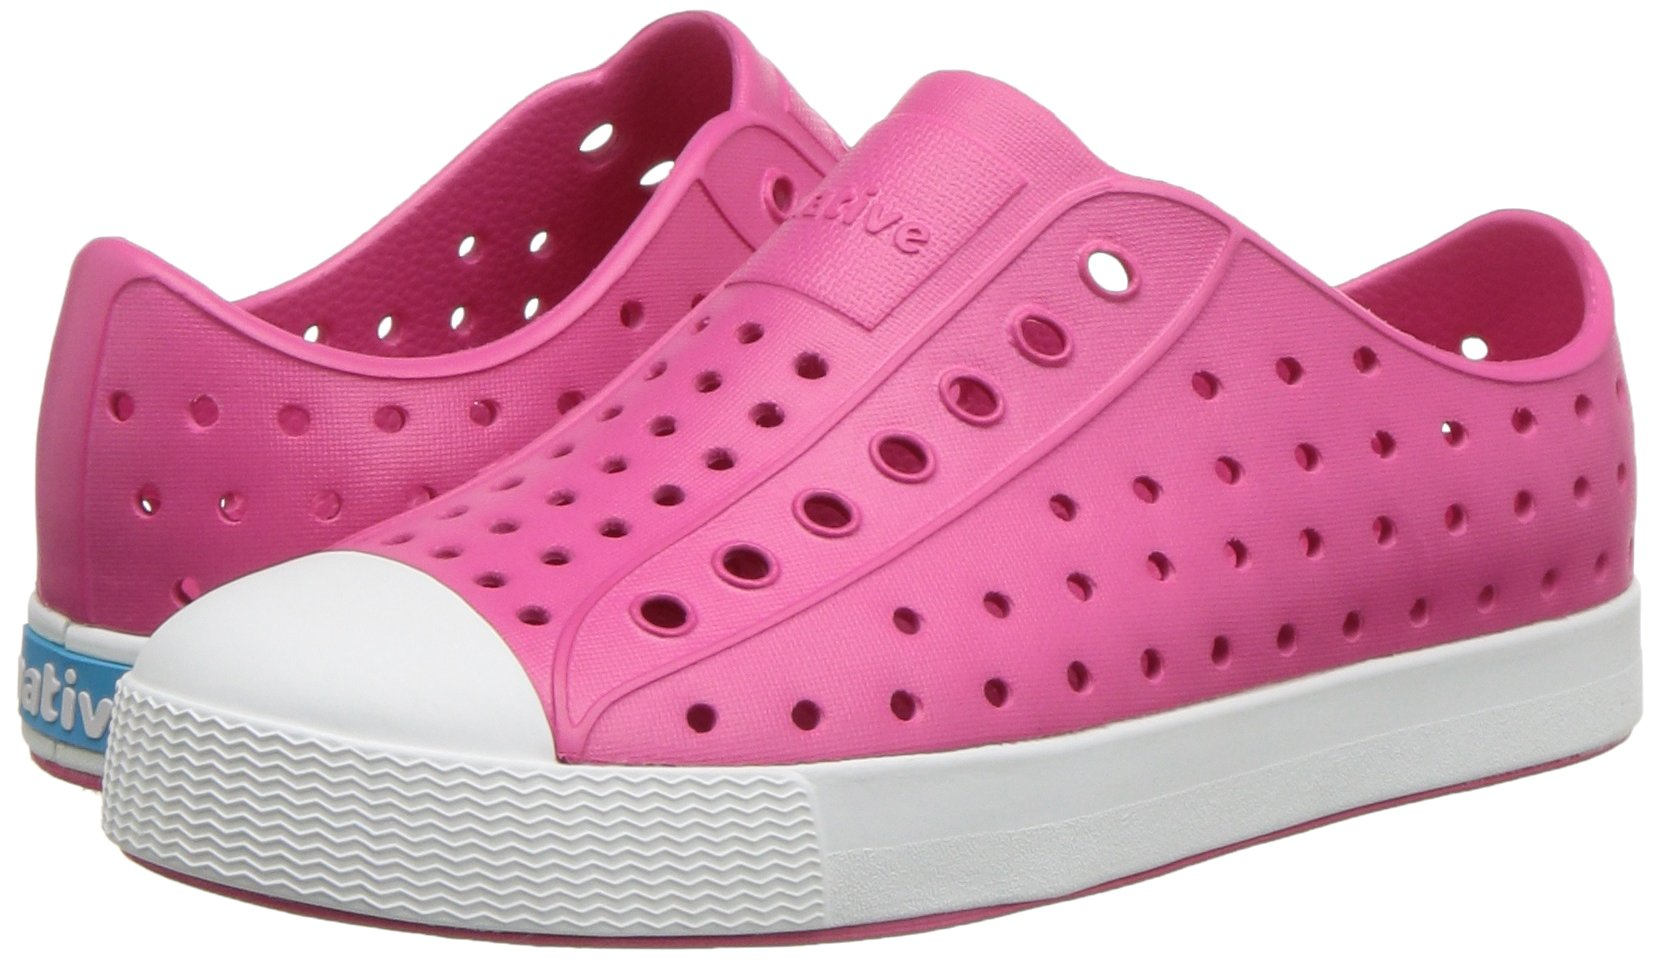 Native Kids Girls Jefferson Junior Water Proof Shoes, Hollywood Pink/Shell White, 6 Medium US Big Kid by Native Shoes (Image #6)